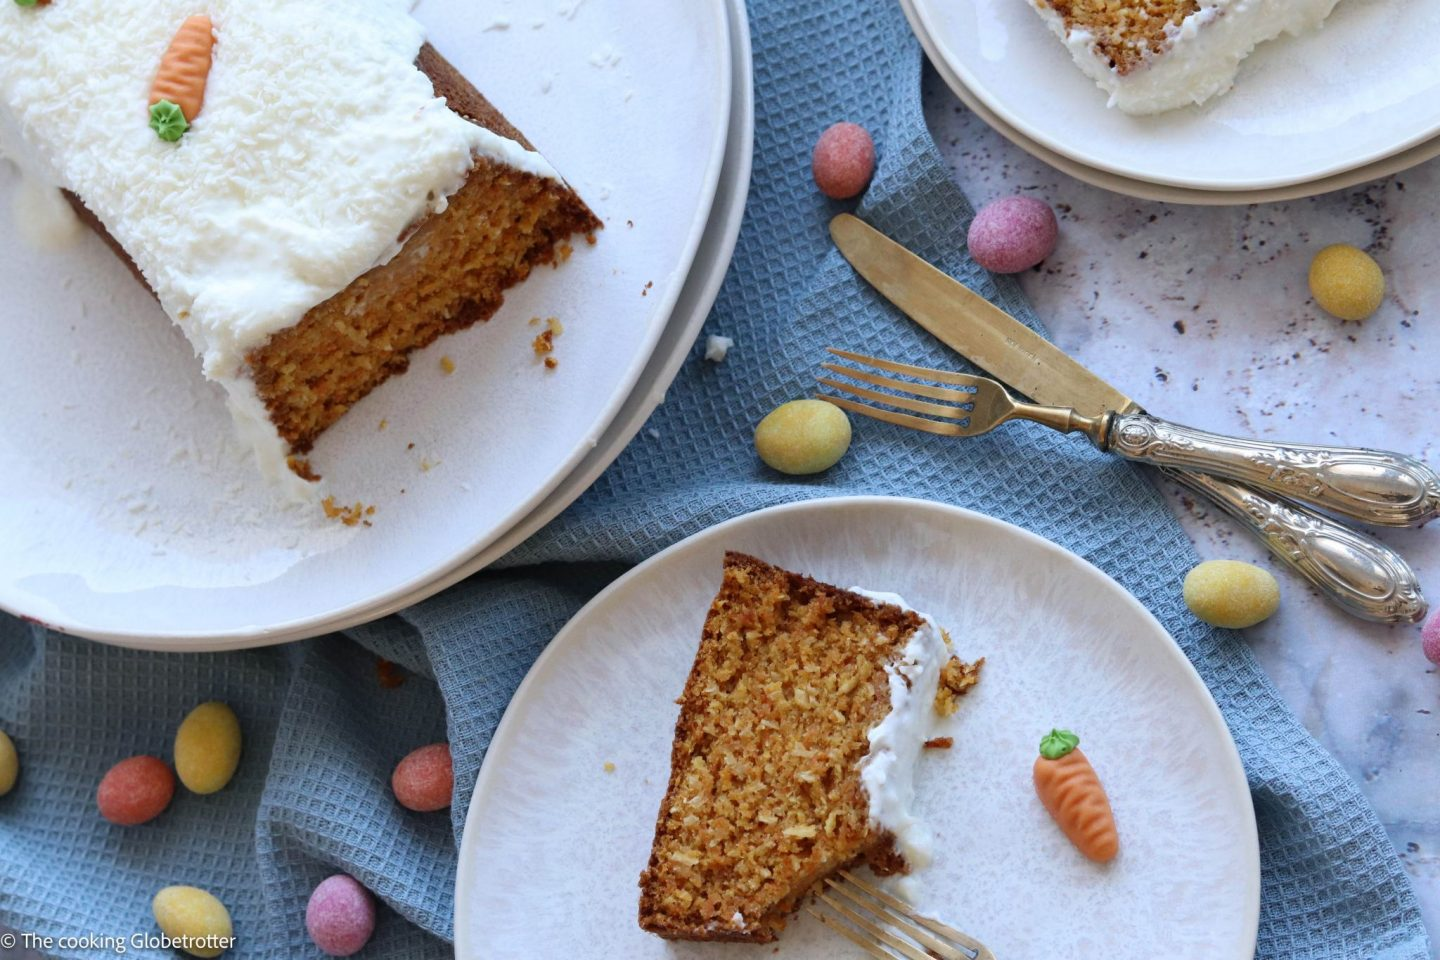 Cooked Recipe for coconut and carrots cake with yogurt cream for your easter brunch with family healthy snack for children low sugar bake